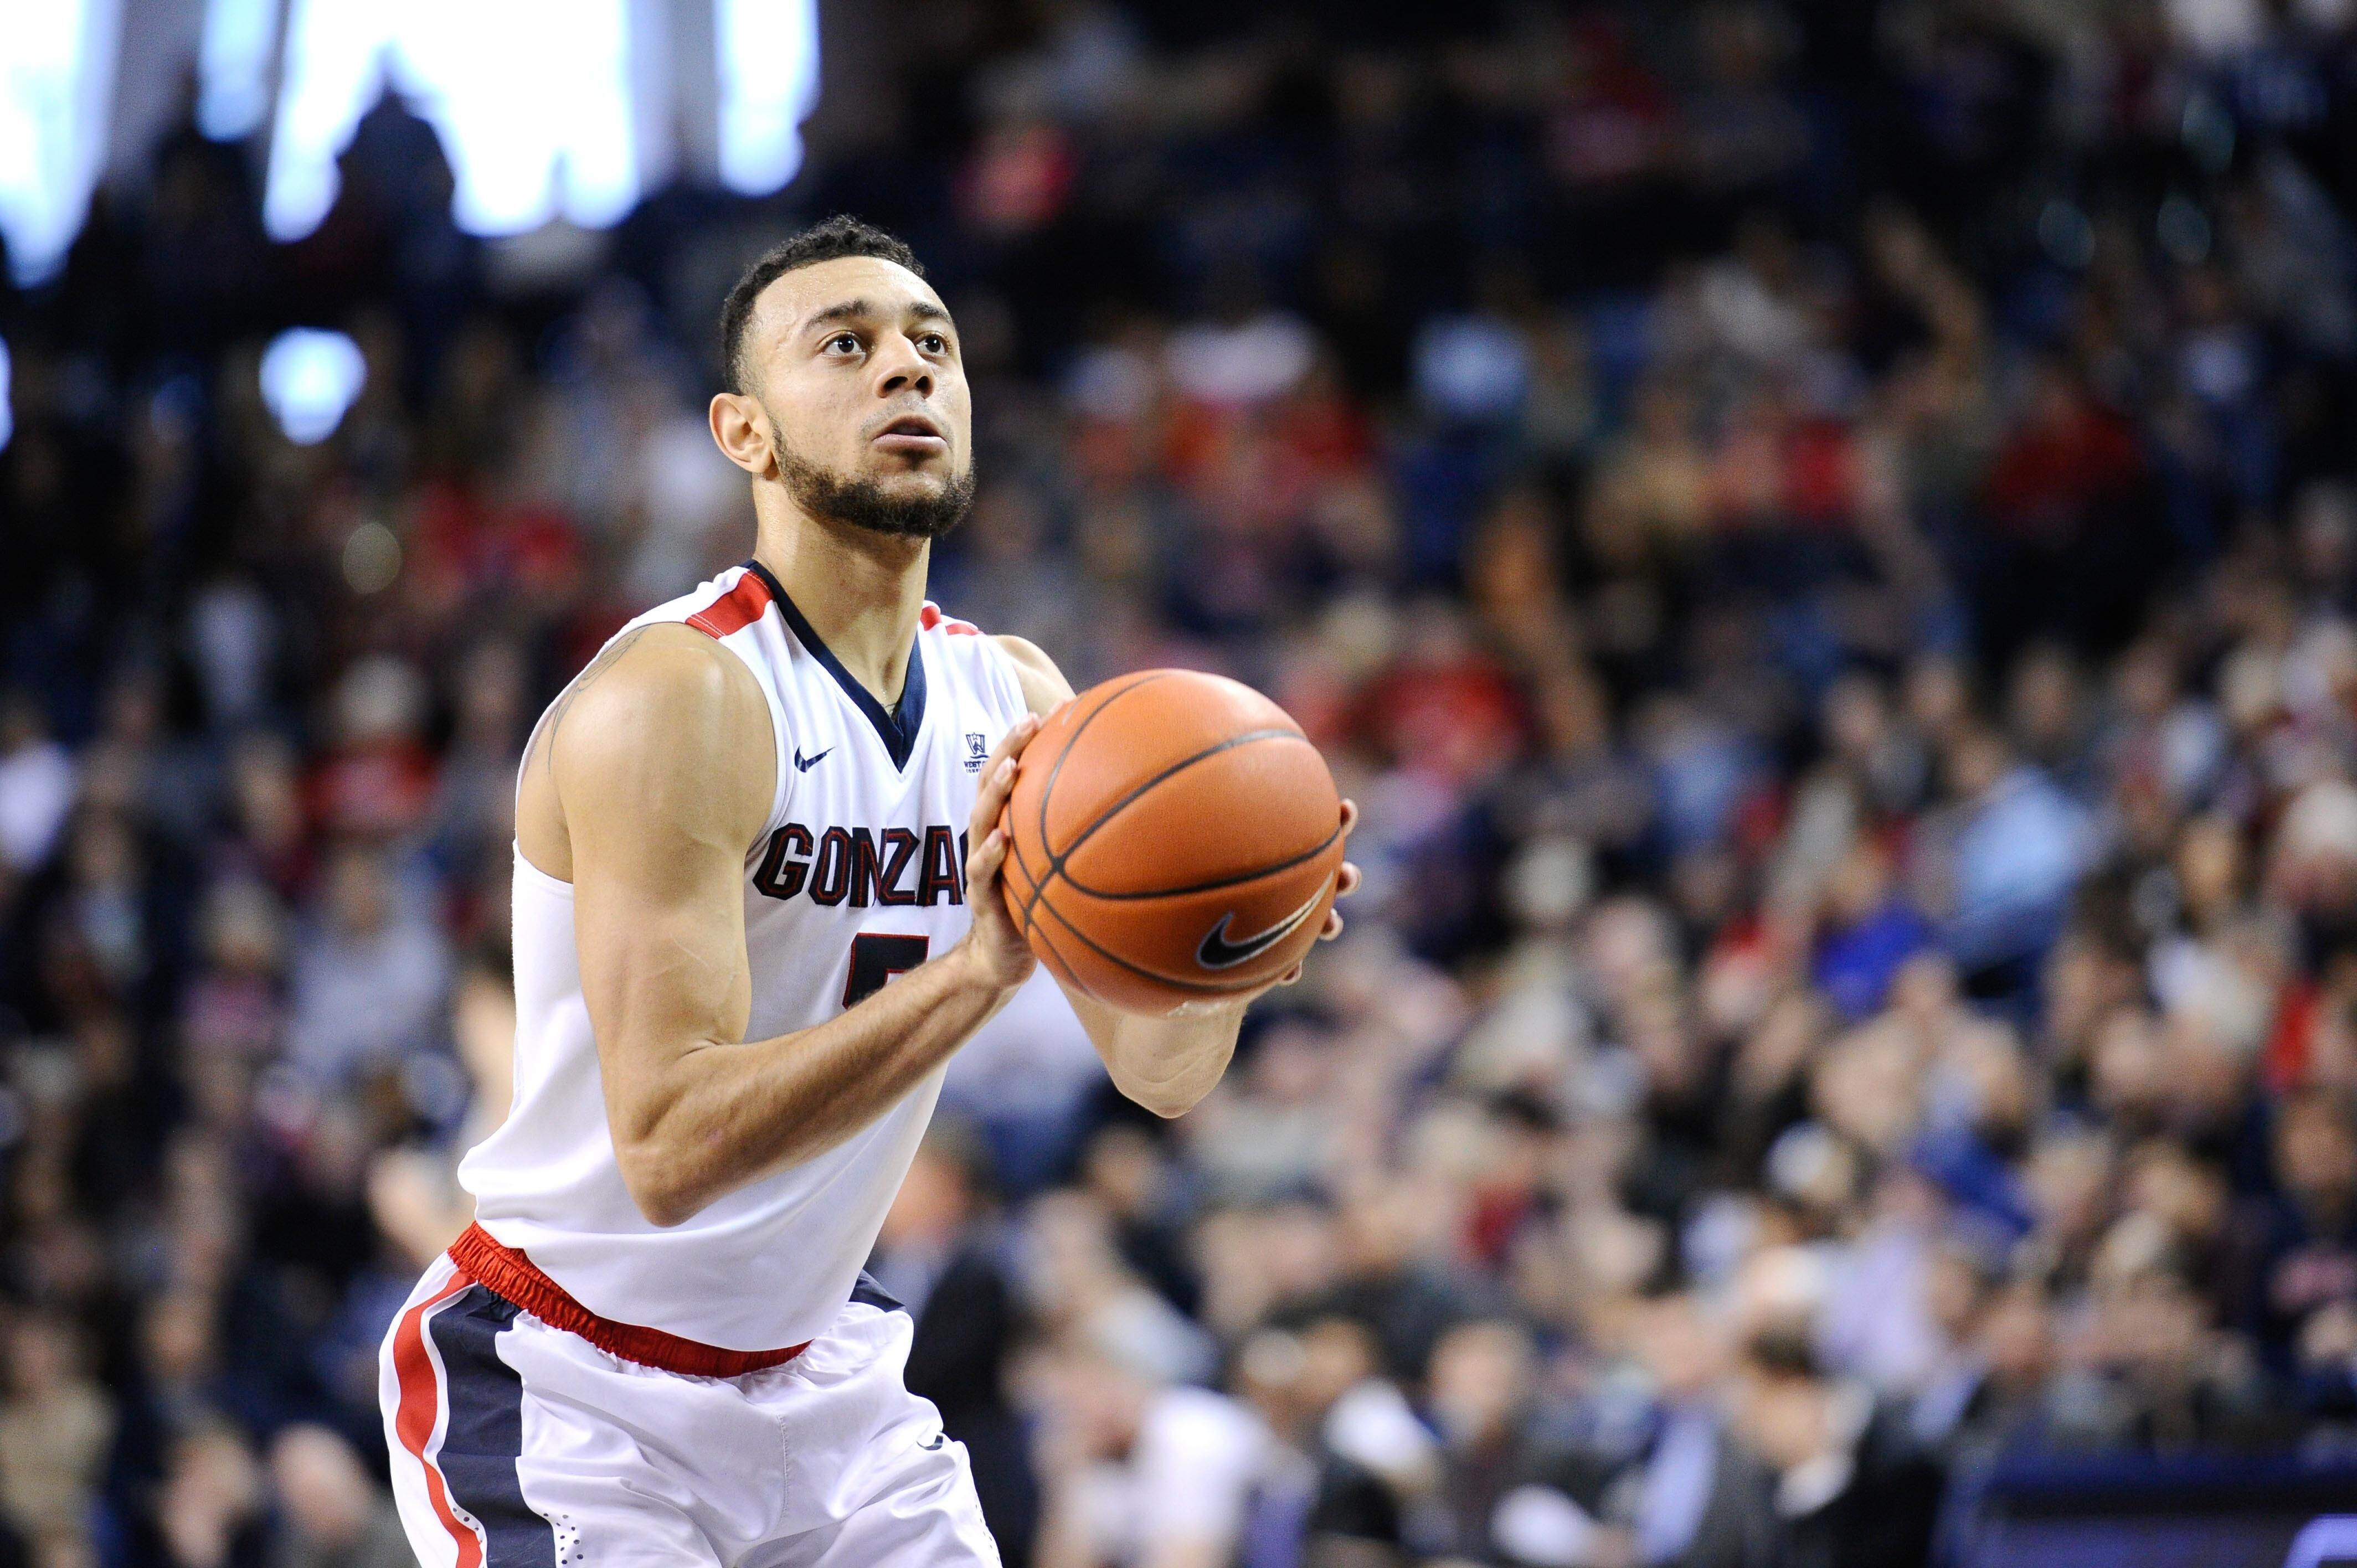 This is a photo of Lucrative Printable Gonzaga Basketball Schedule